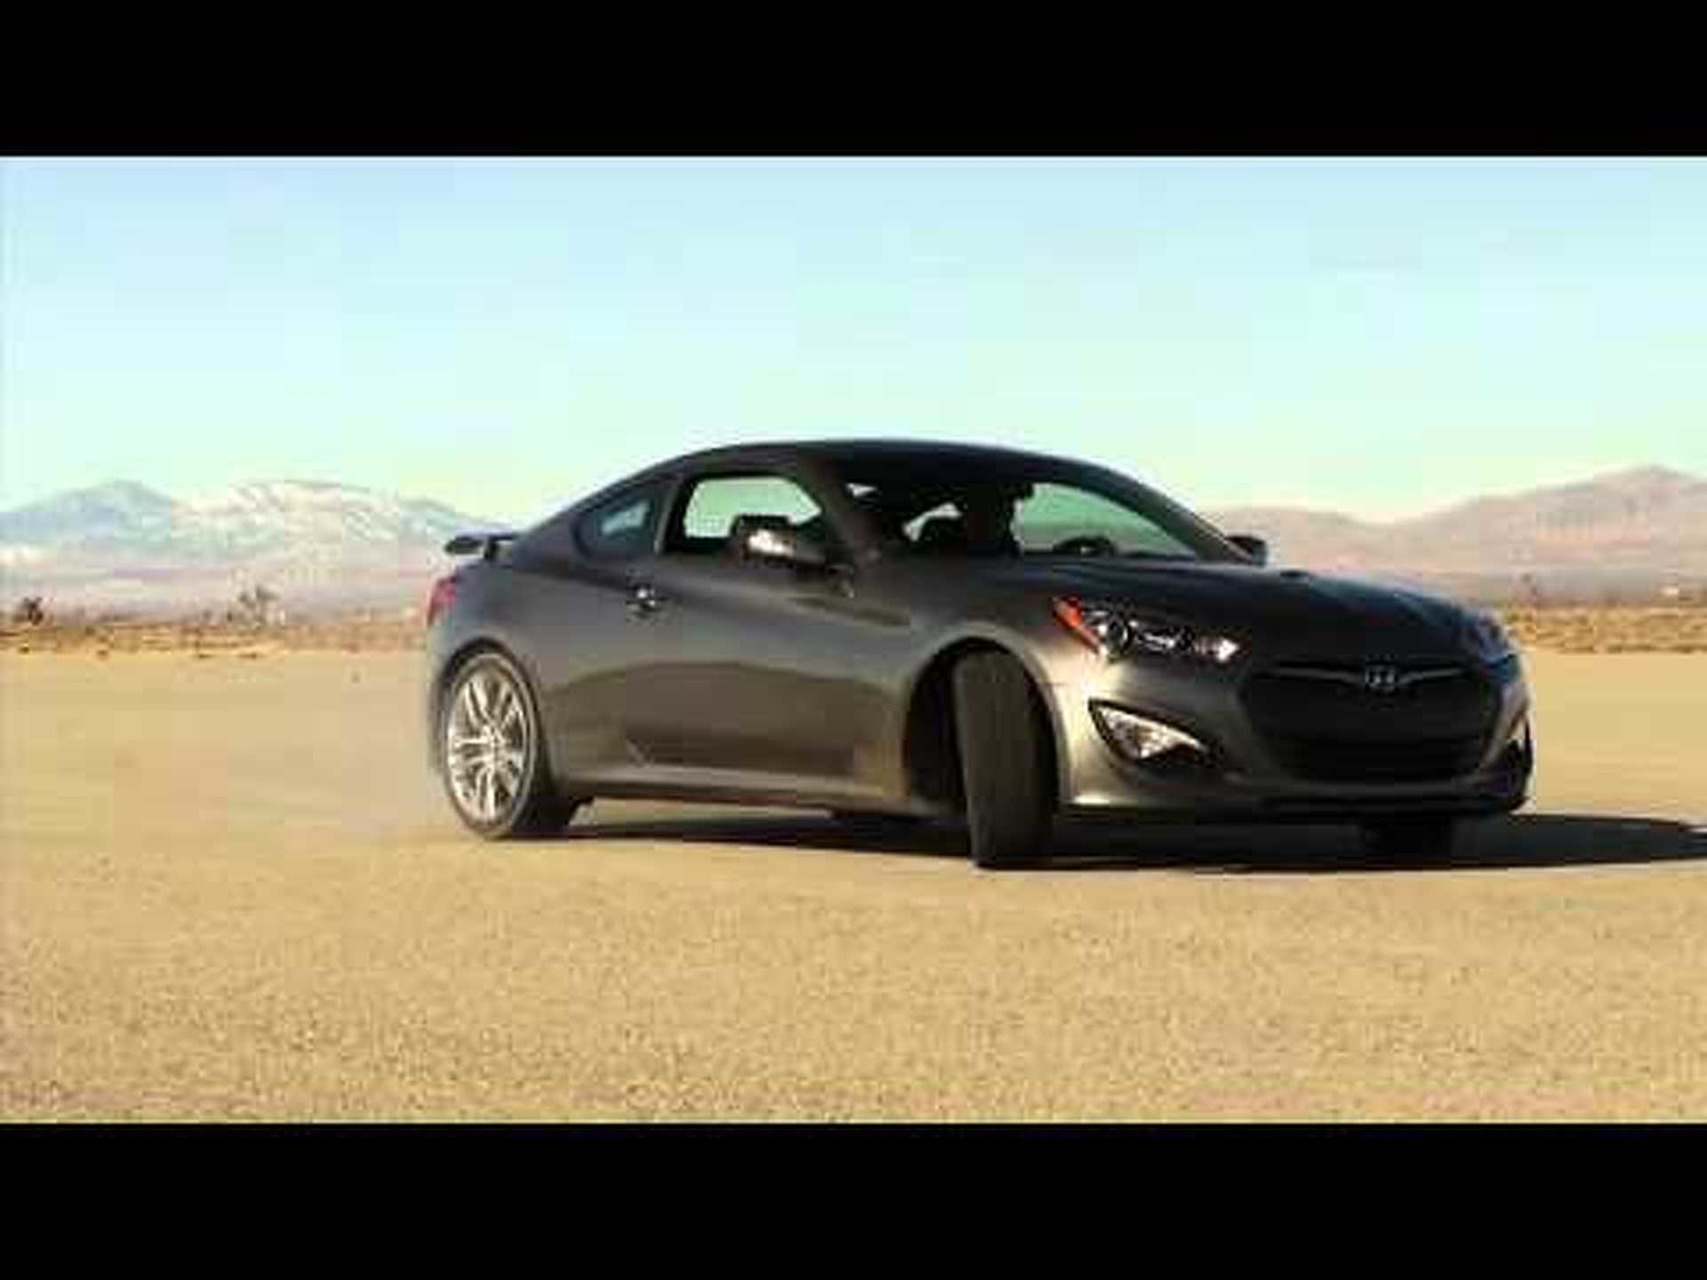 2013 Hyundai Genesis Coupe - Performance